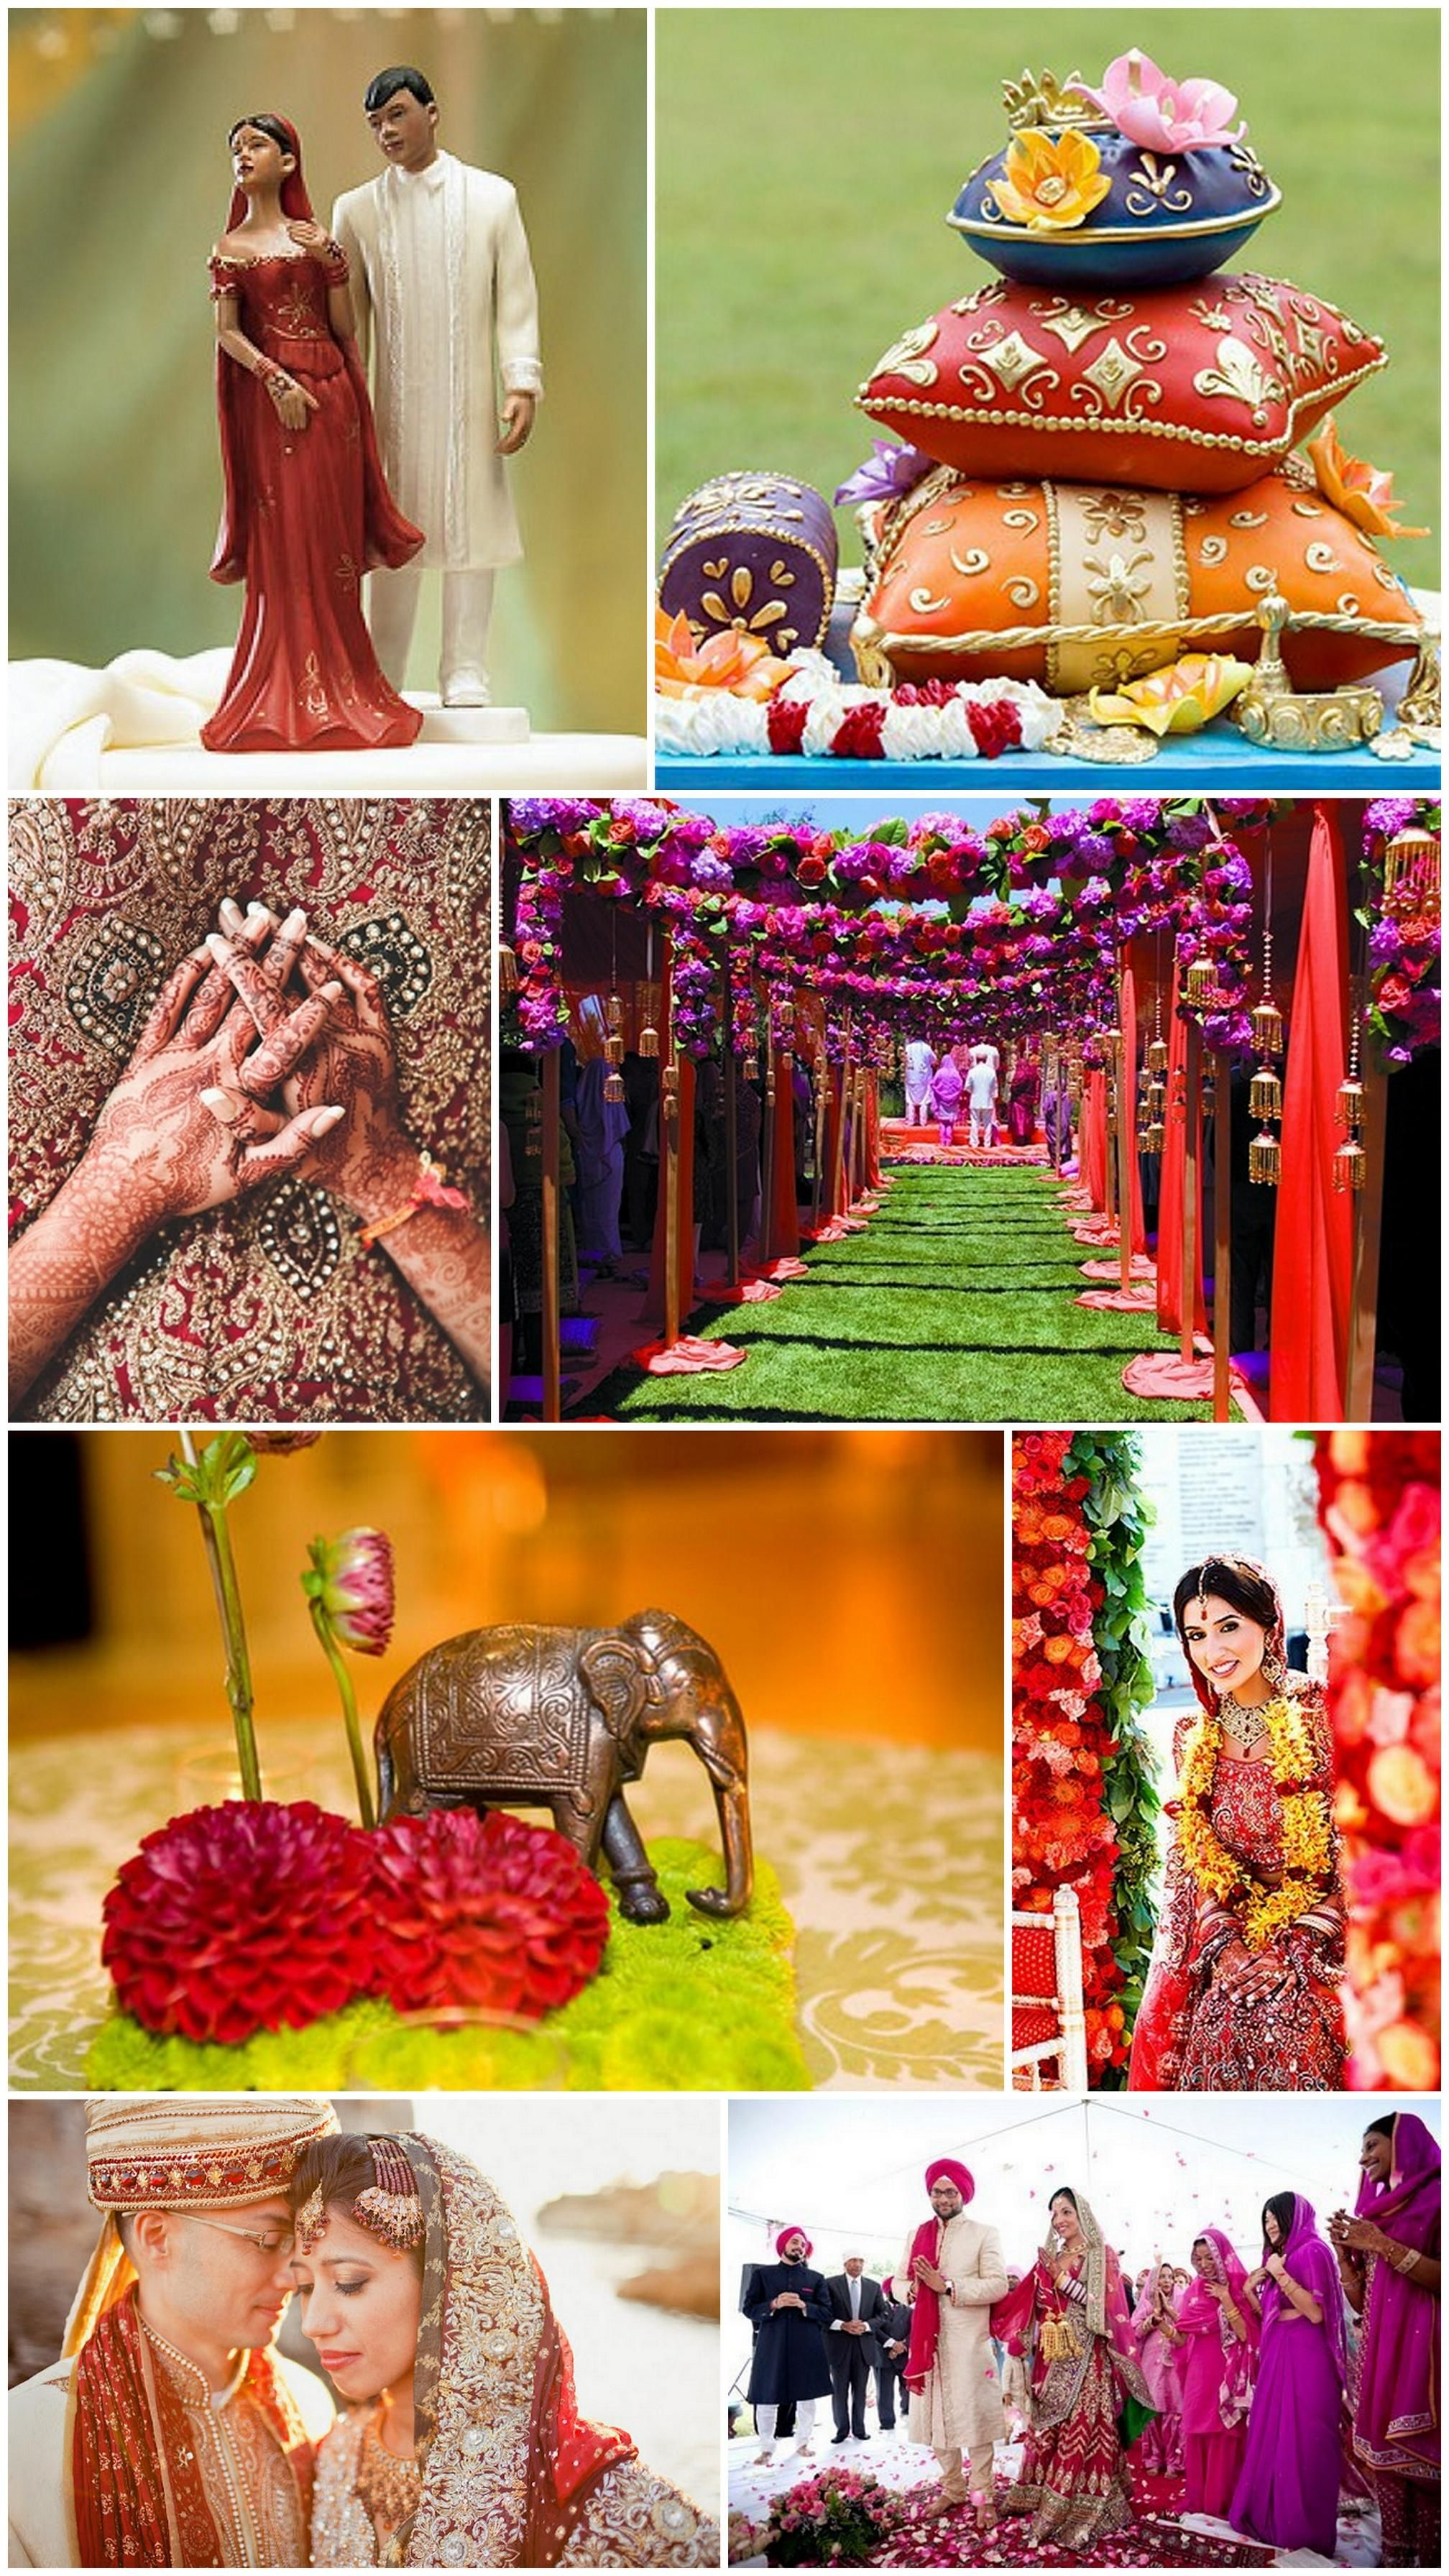 Wedding decorations muslim  MultiCultural Weddings  The Daily Design by Koyal Wholesale